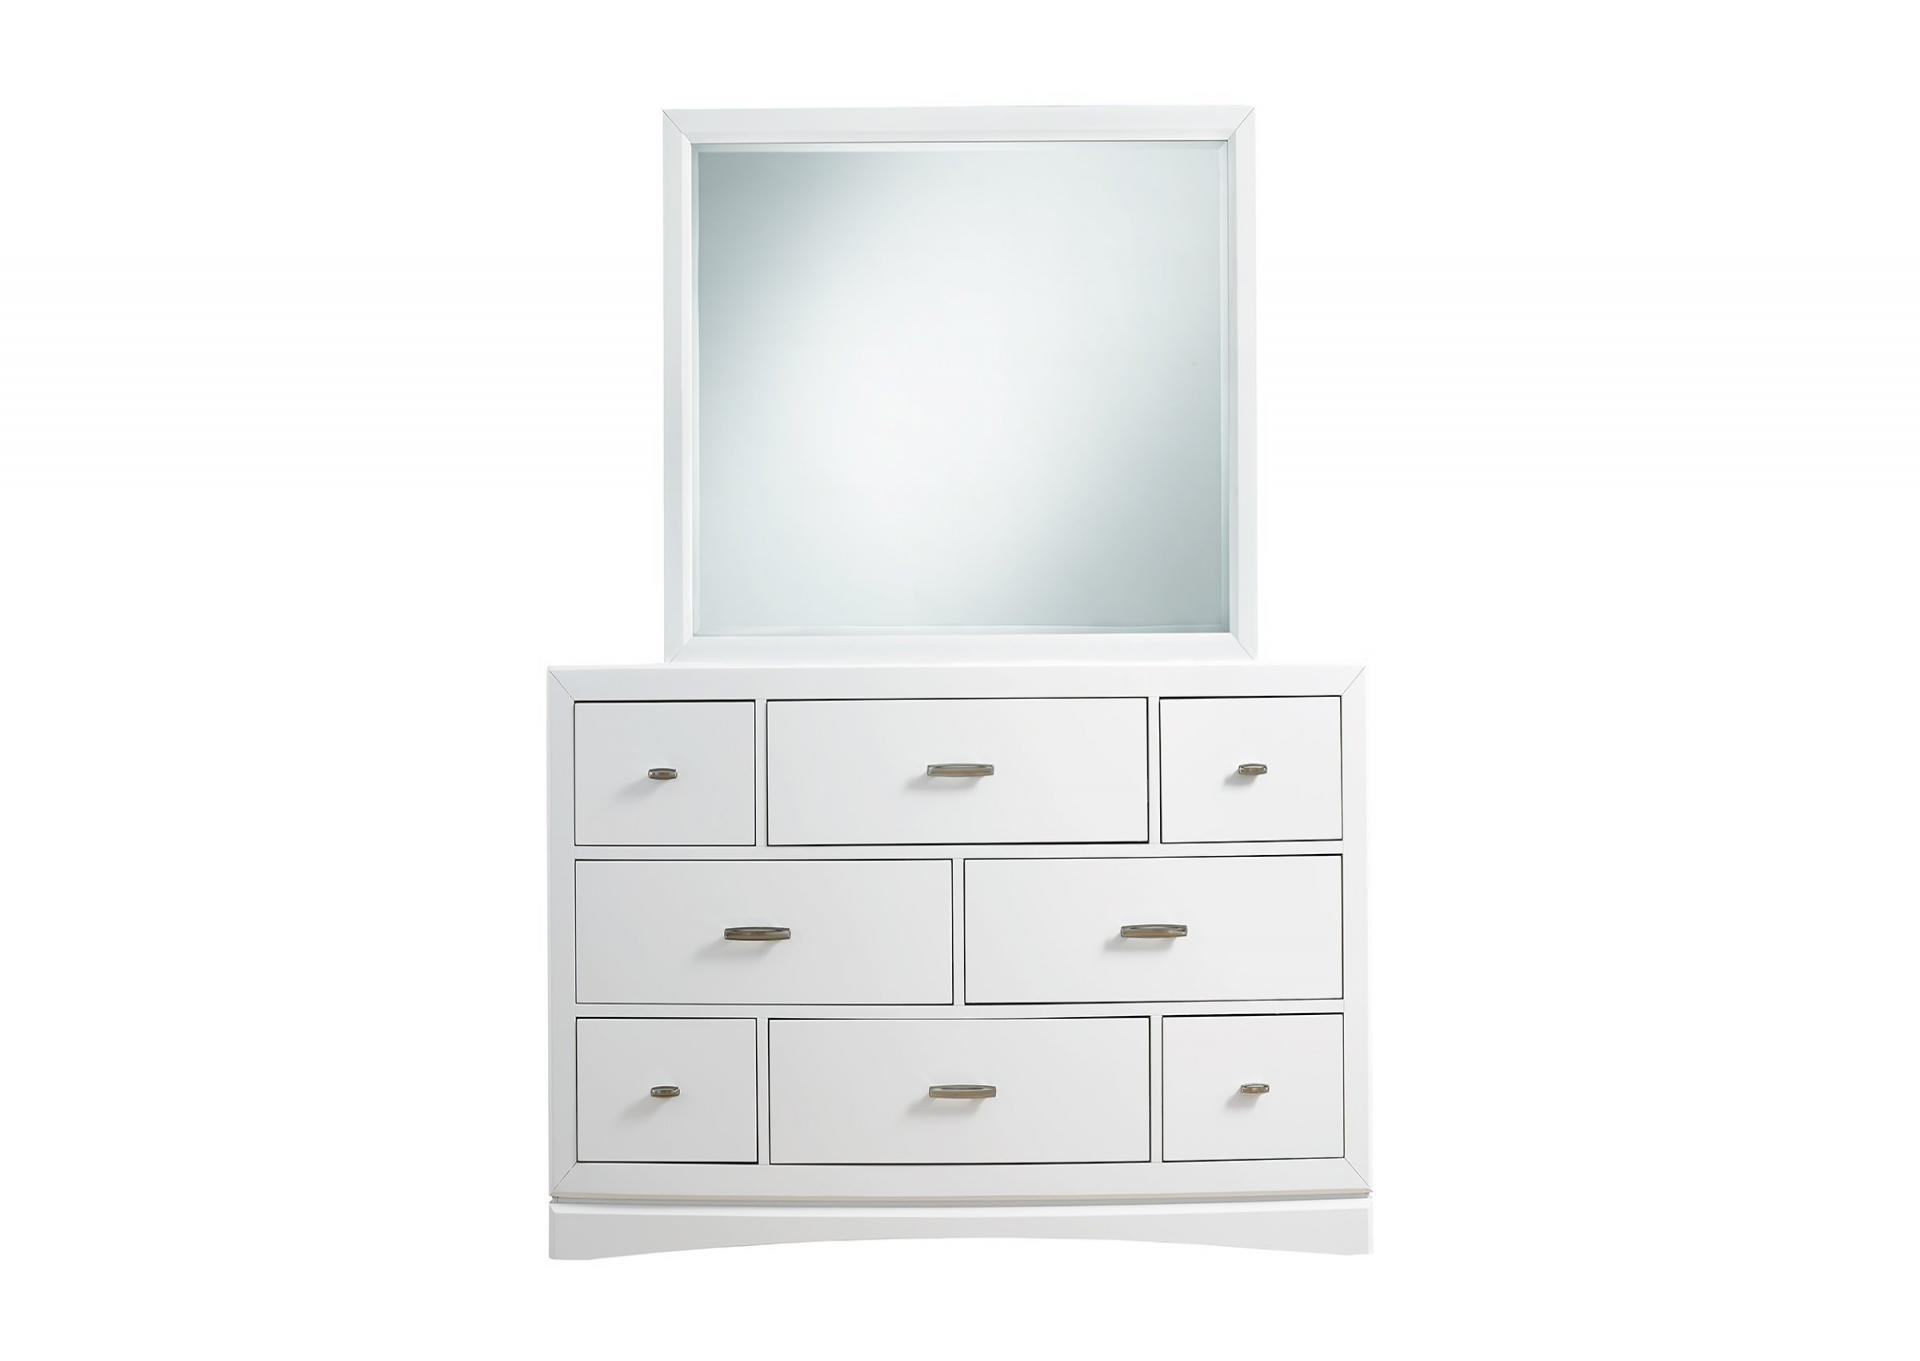 Toro White Bedroom Group with Dresser Mirror and Nighstand.  STorage in Side rails